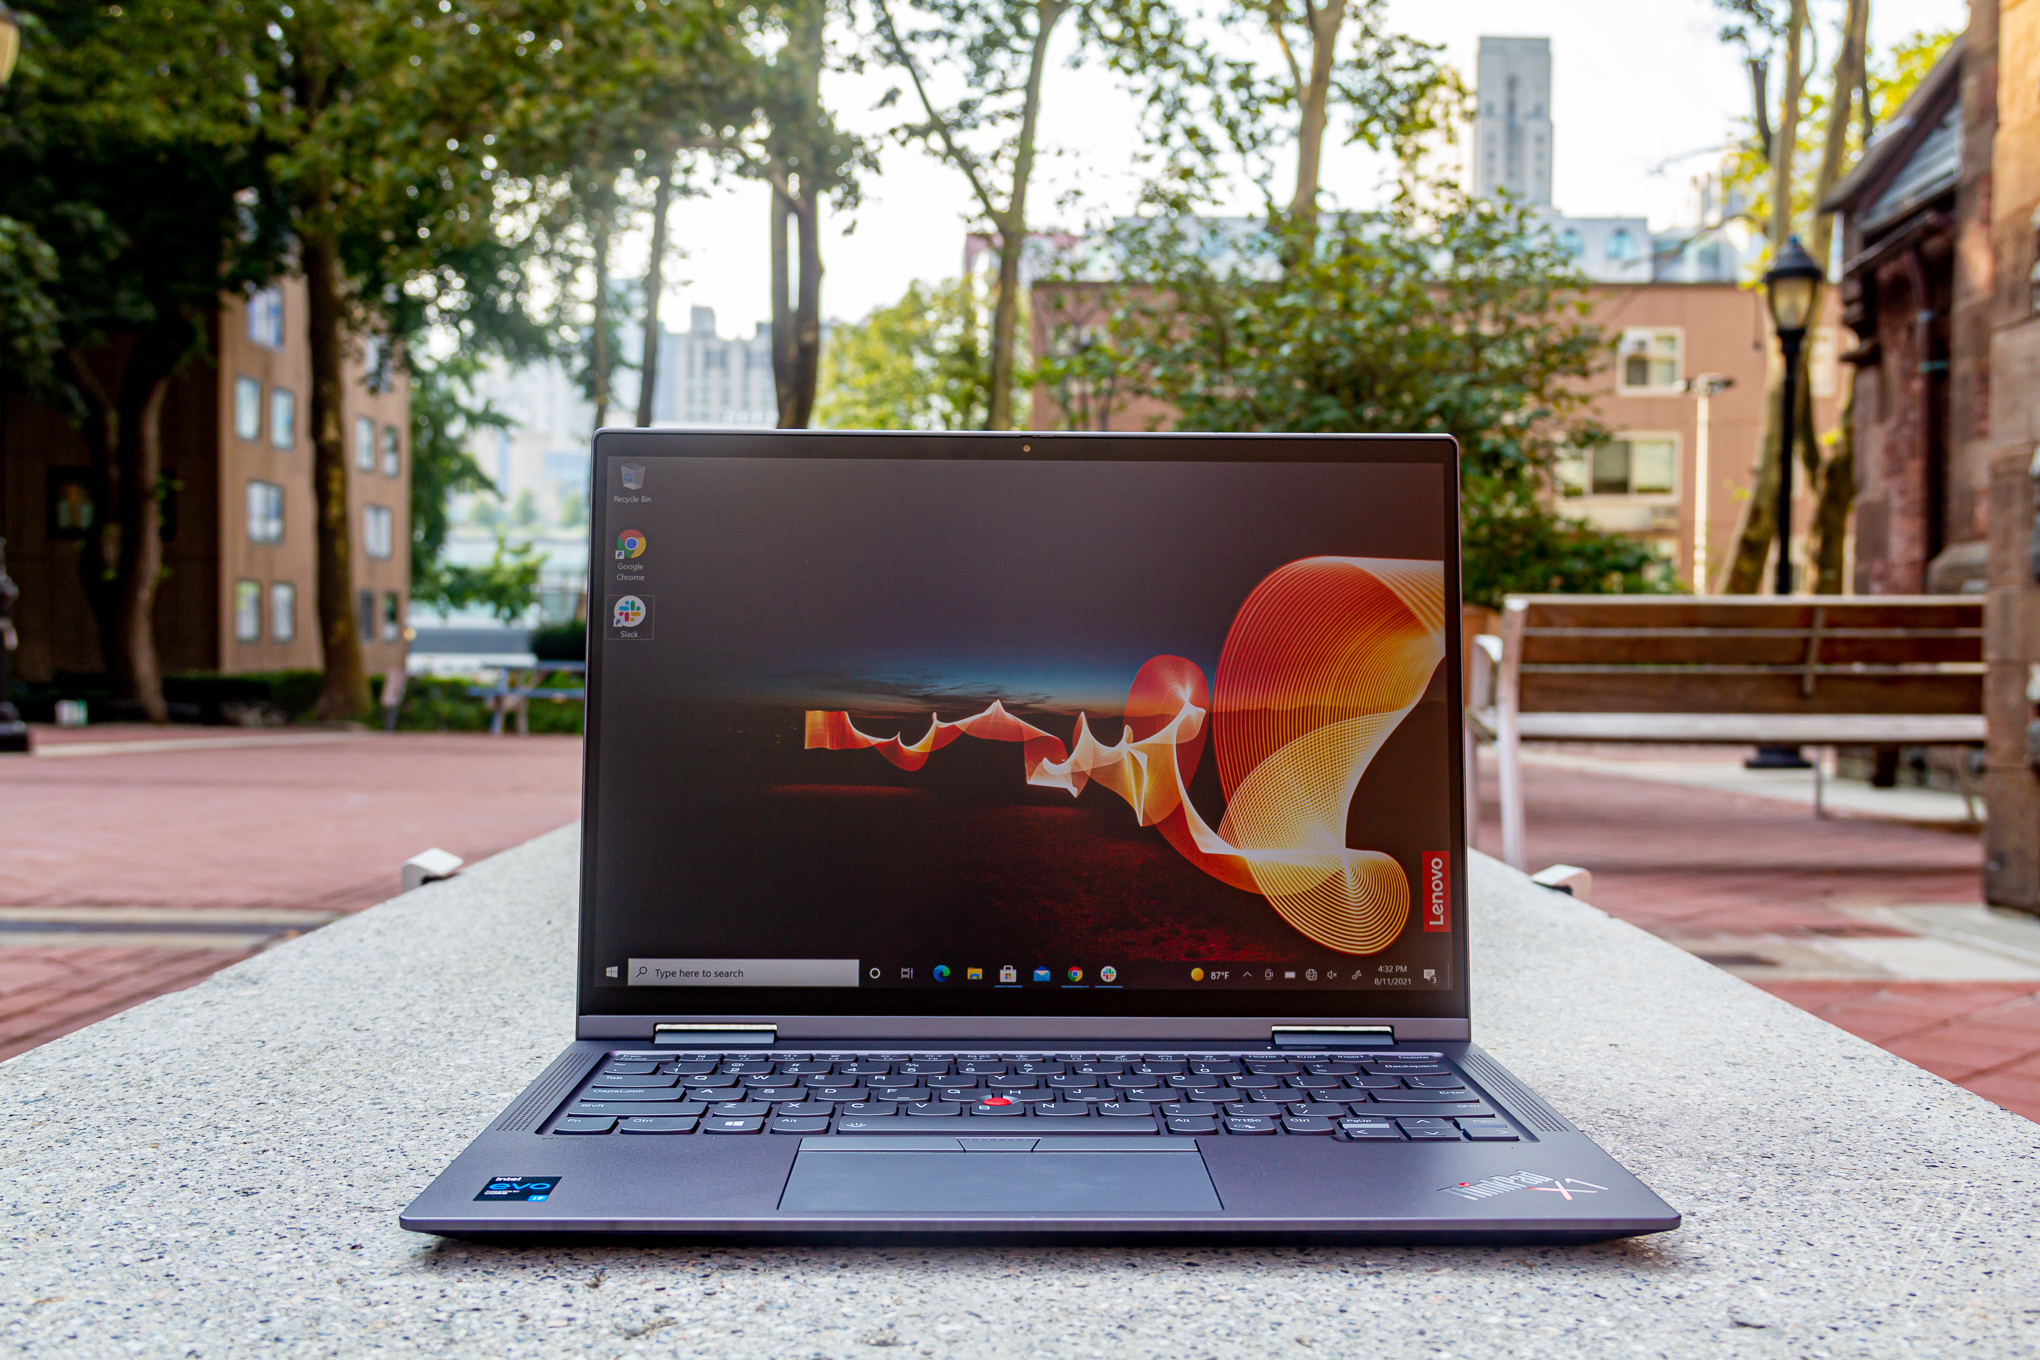 The ThinkPad X1 Yoga Gen 6 on a bench in an outdoor park, open. The screen displays an outdoor night scene with an orange banner rippling across it and the Lenovo banner on the bottom right side.